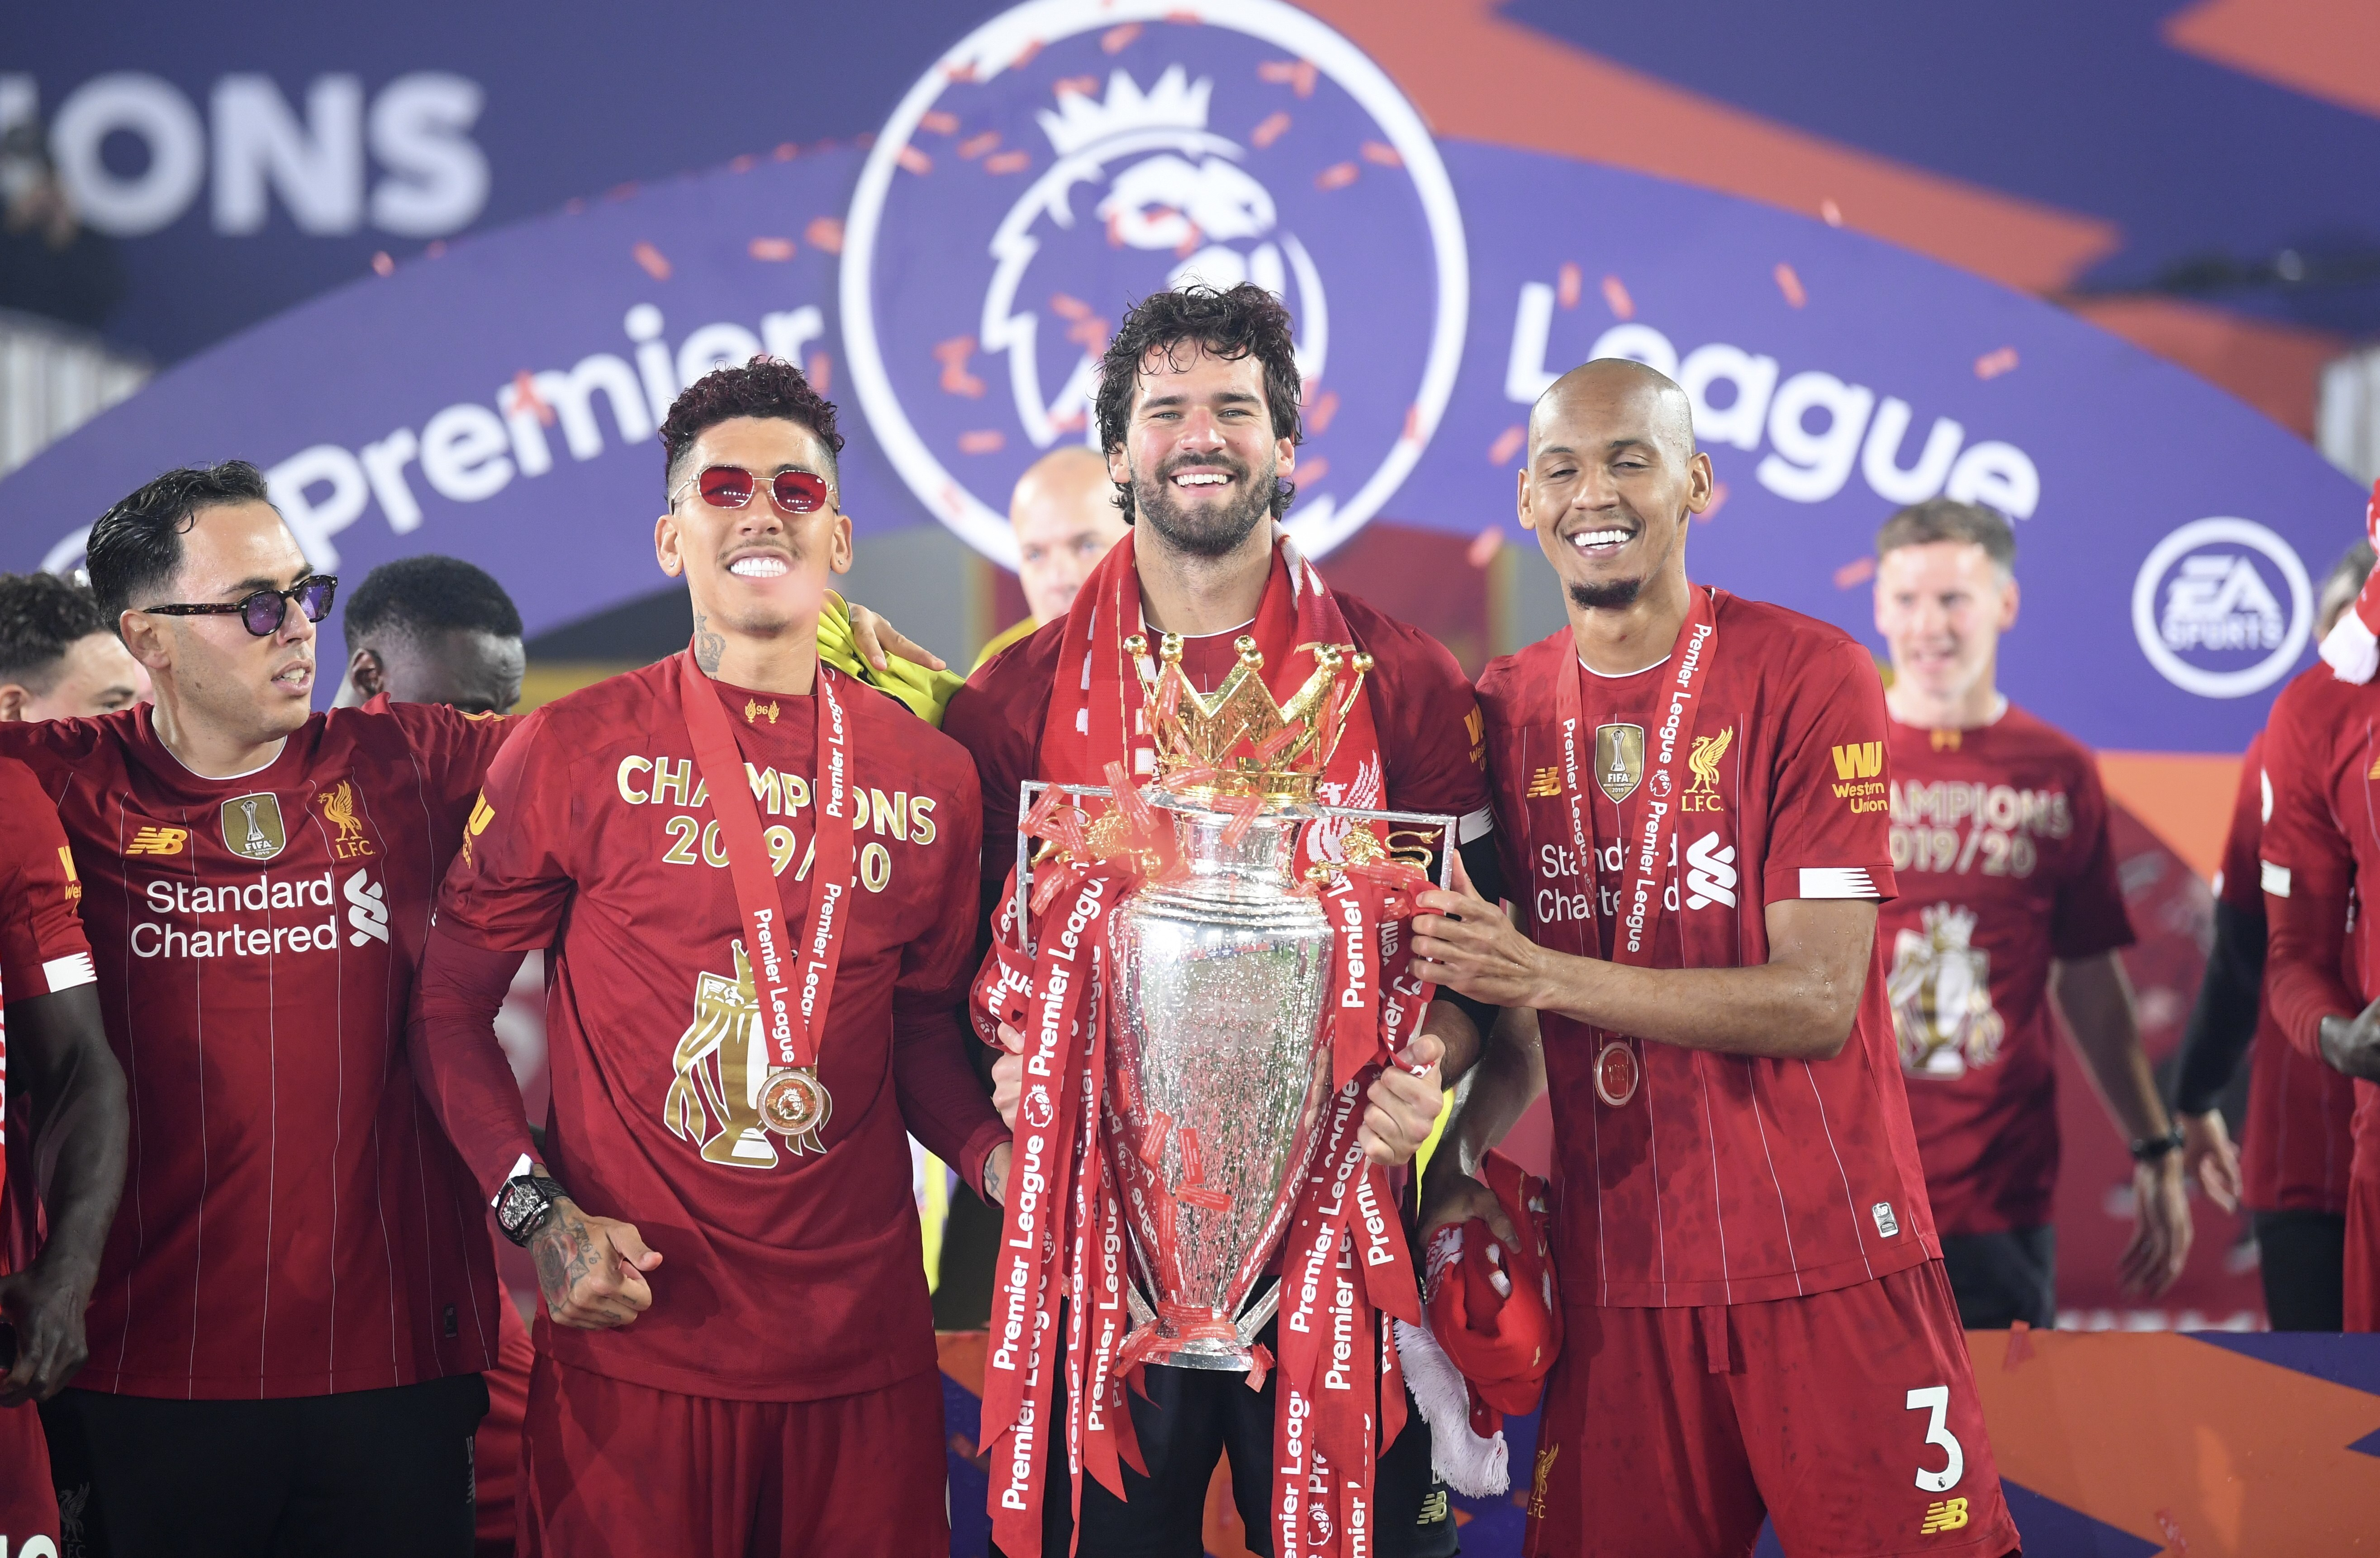 How To Watch English Premier League In United States During 2020 21 Season Live Streams For Liverpool Manchester City Manchester United Chelsea Arsenal Tottenham More Matches Nj Com